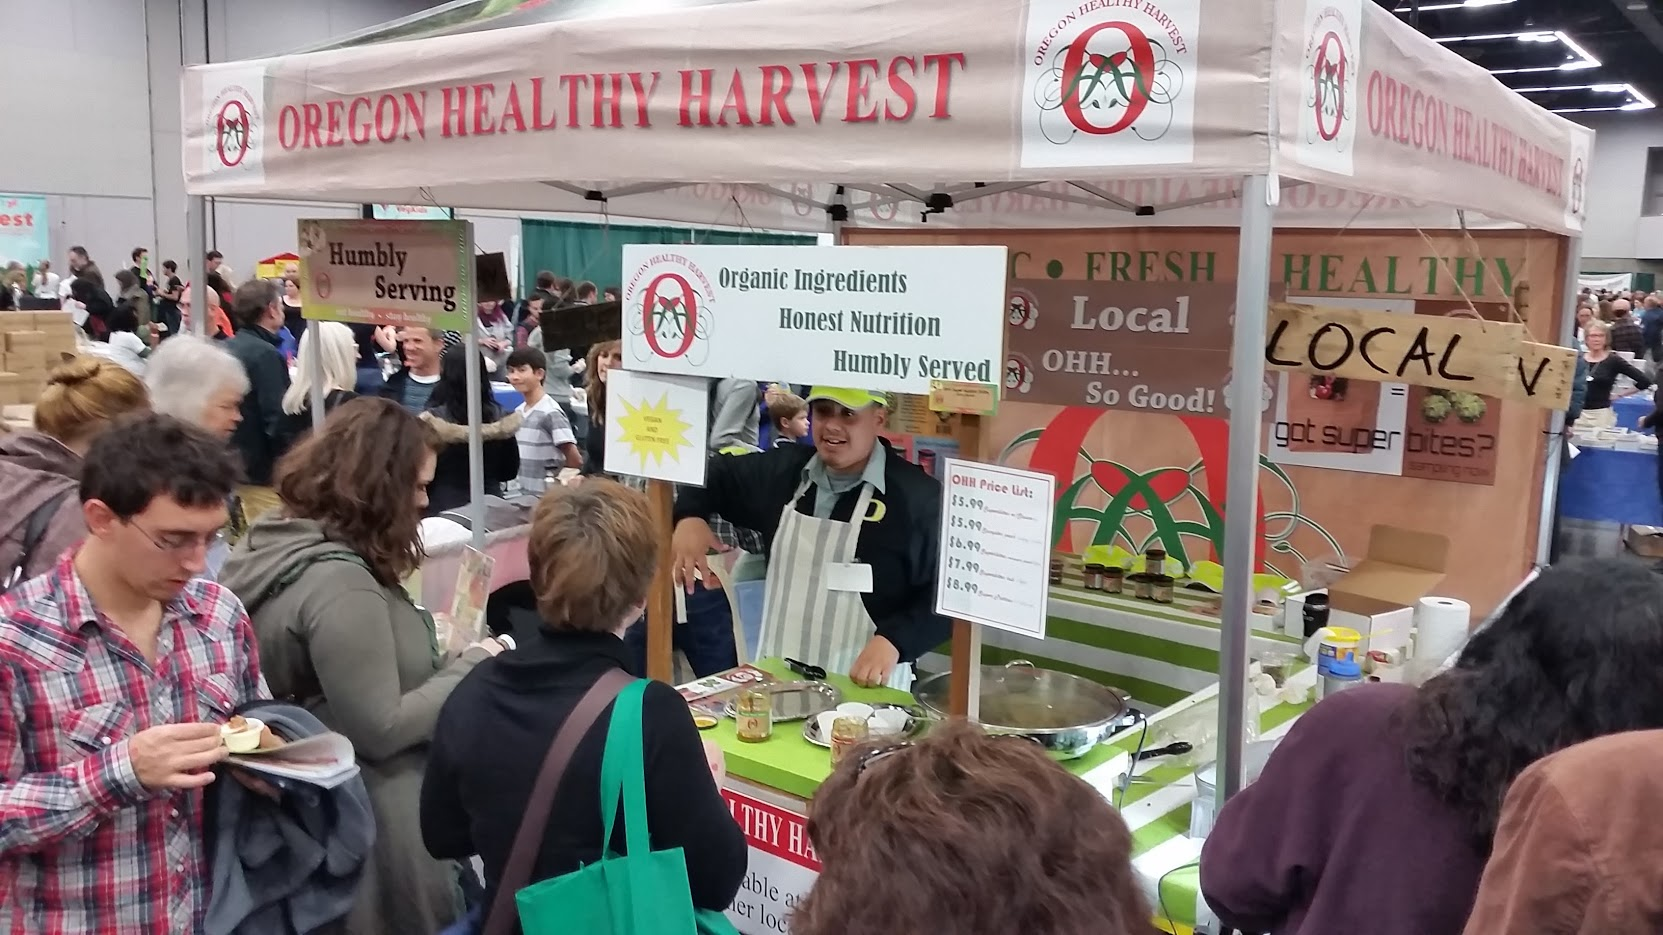 Oregon Healthy Harvest at Portland Vegfest.jpg